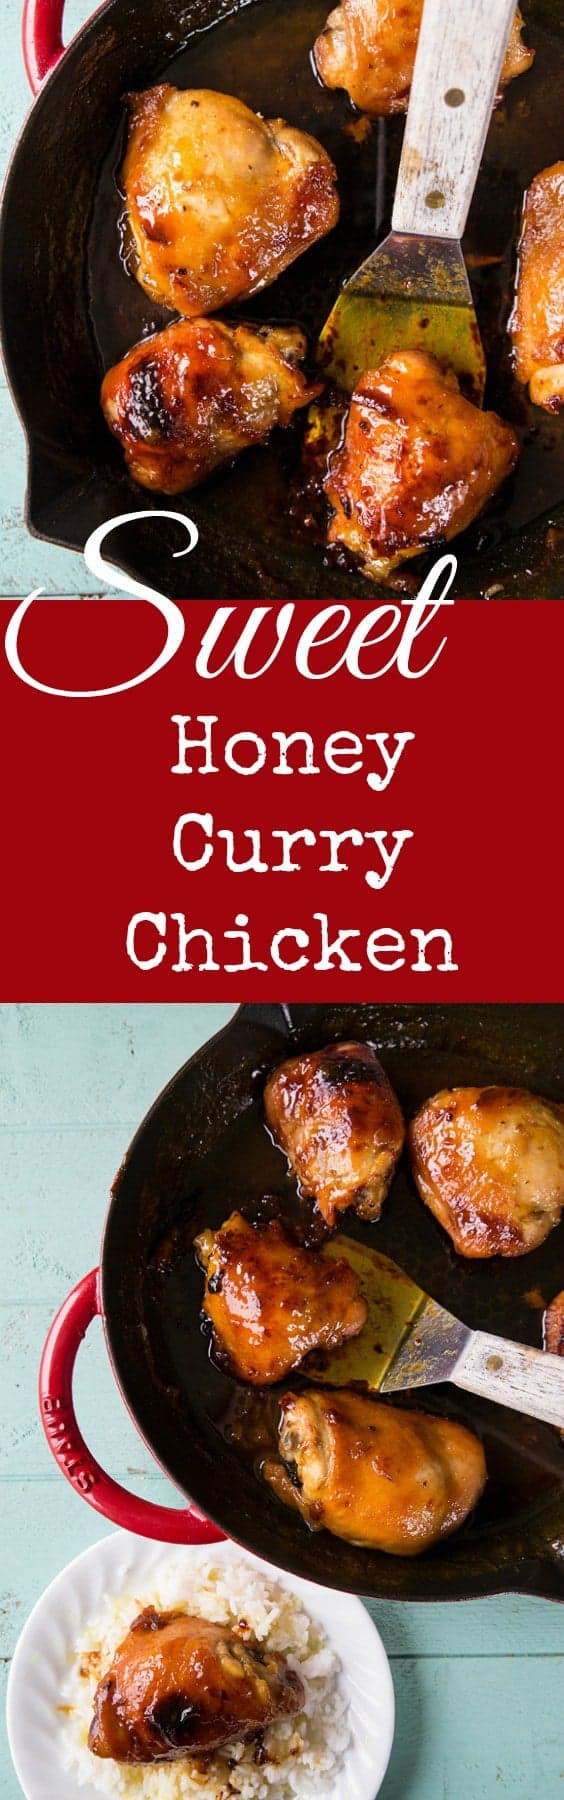 Sweet Honey Curry Chicken from @kitchenmagpie.